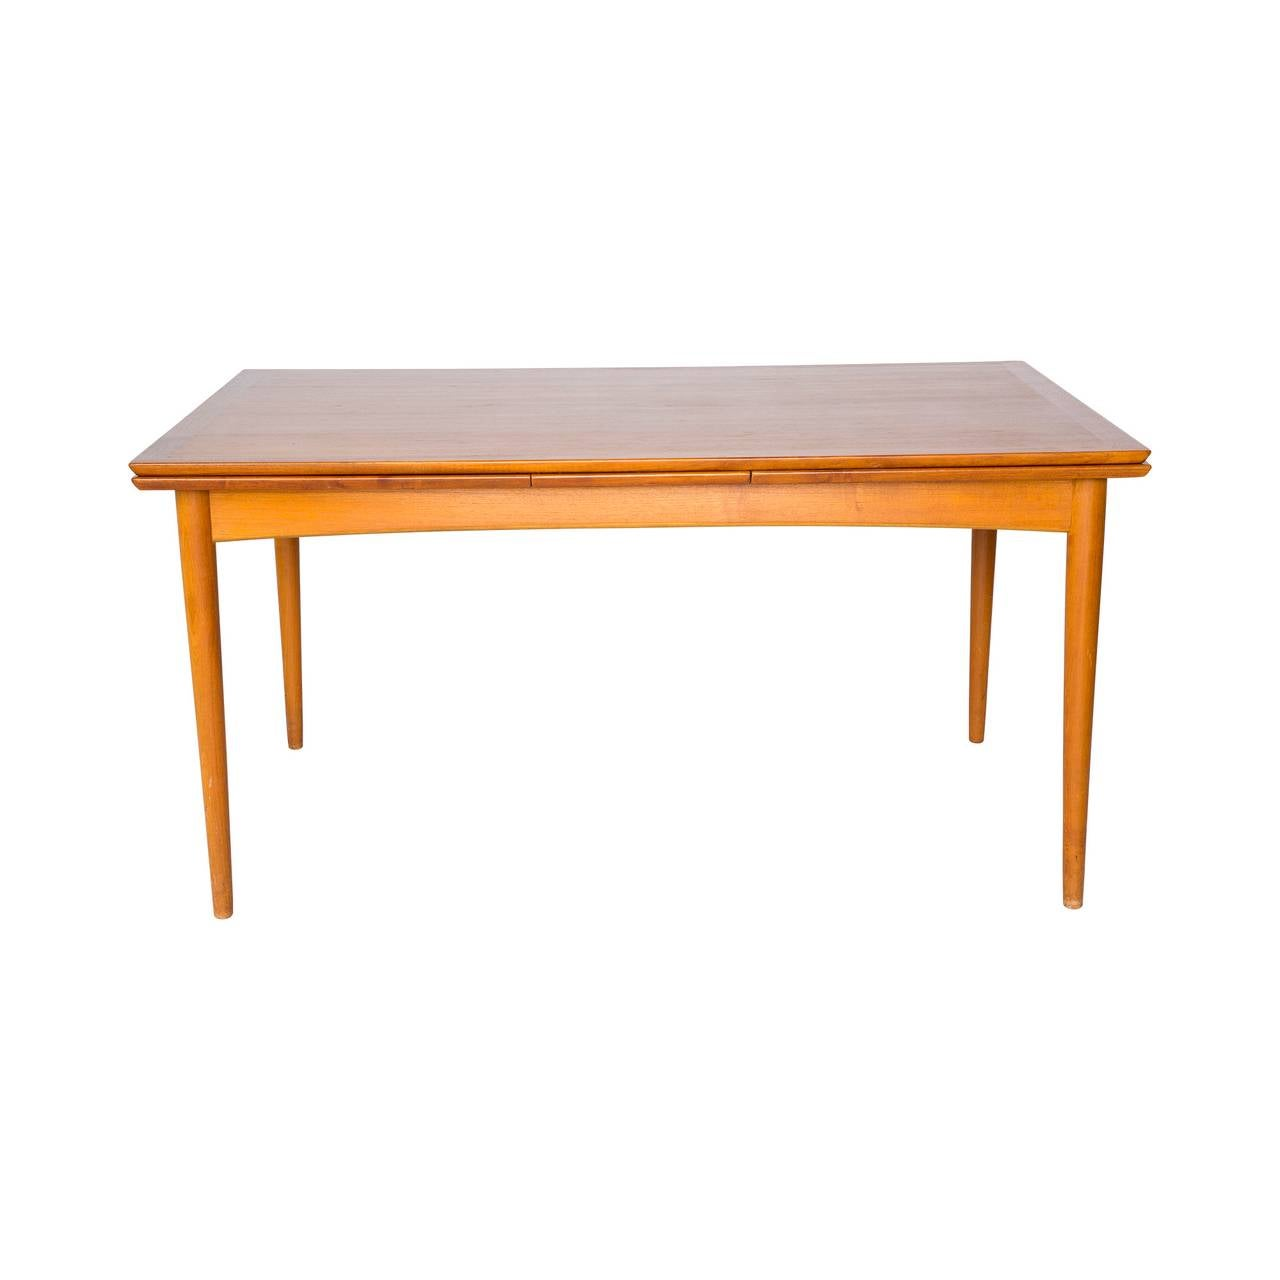 Danish modern expandable teak dining table at 1stdibs for Danish modern dining room table